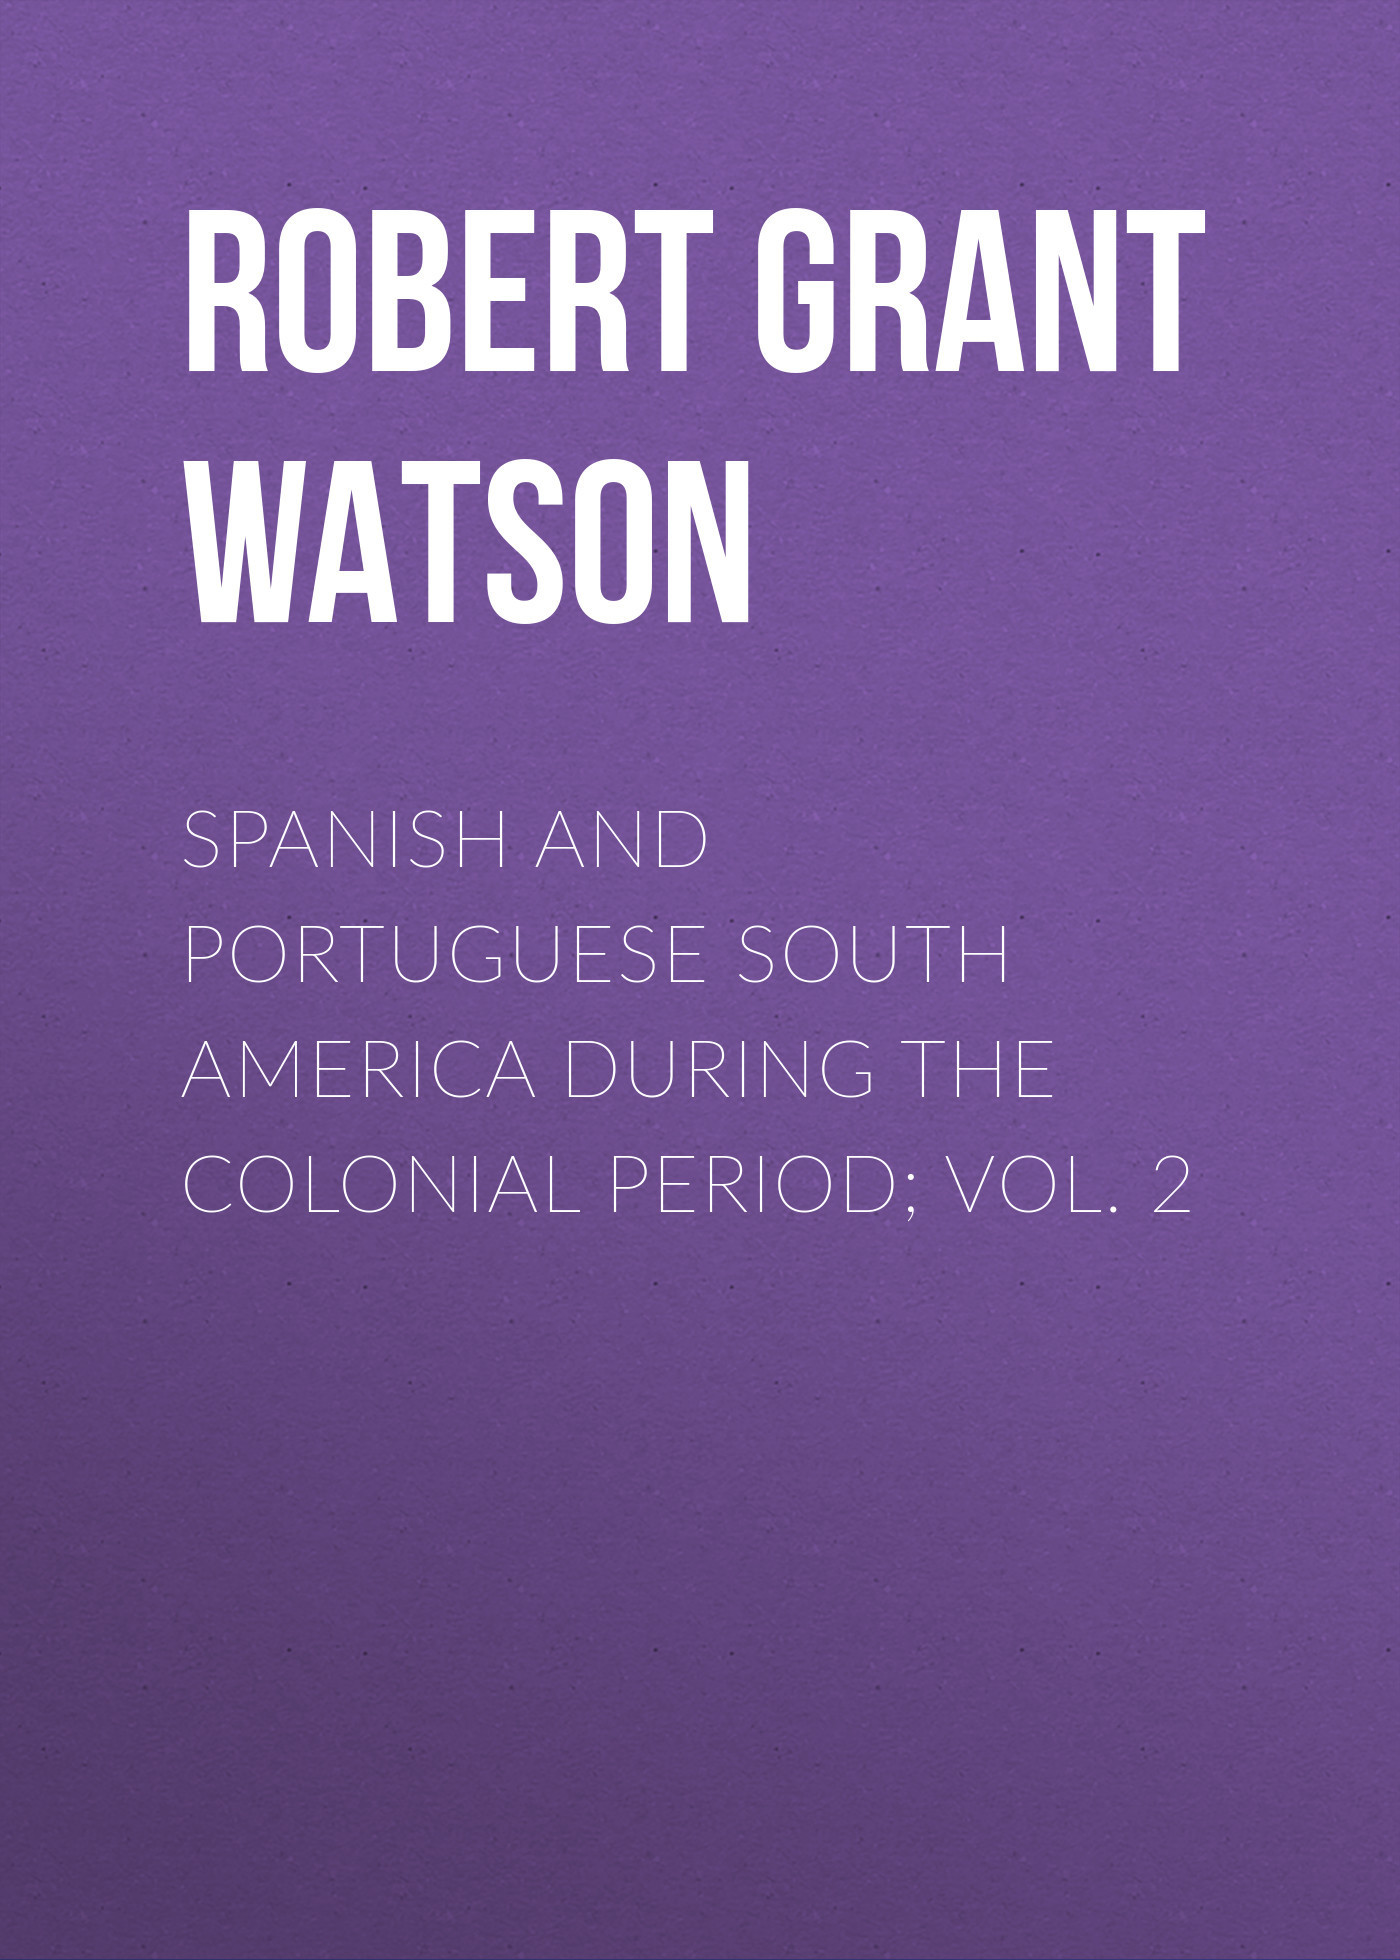 Robert Grant Watson Spanish and Portuguese South America during the Colonial Period; Vol. 2 irs vol 5 corporate america